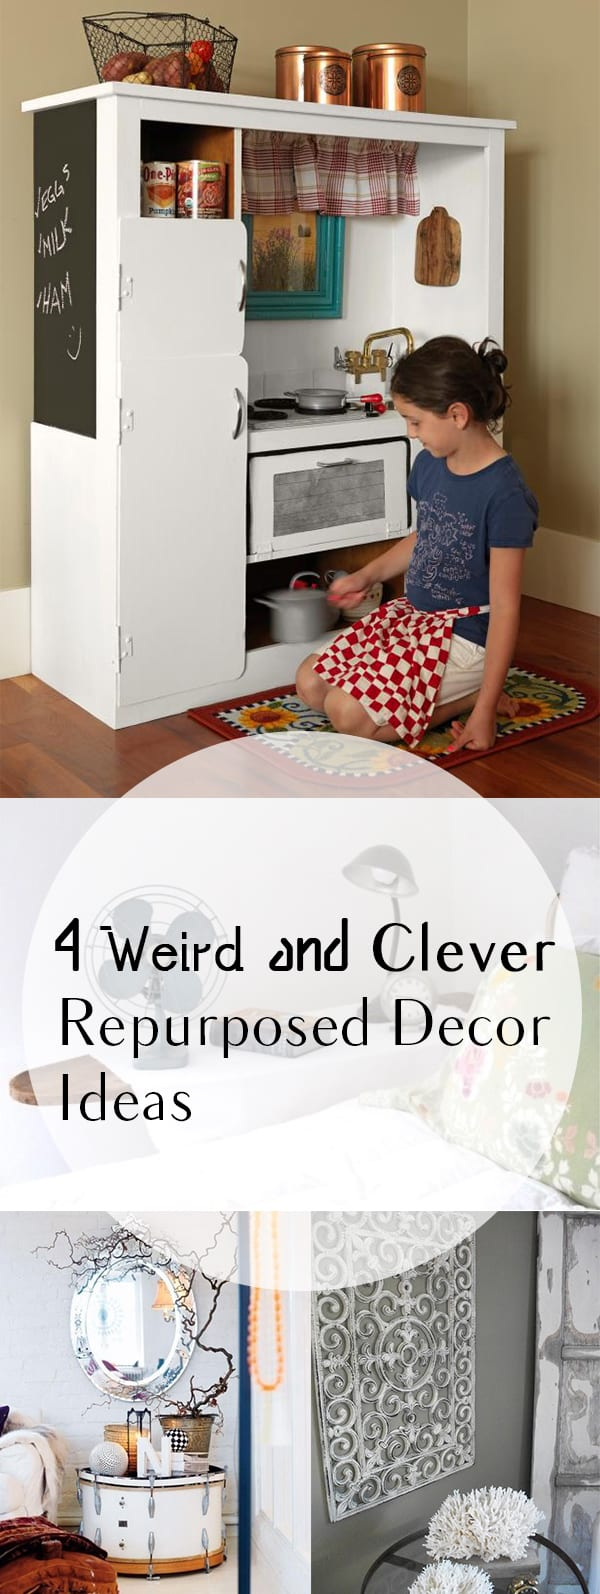 14 Weird and Clever Repurposed Decorating Ideas  Page 2